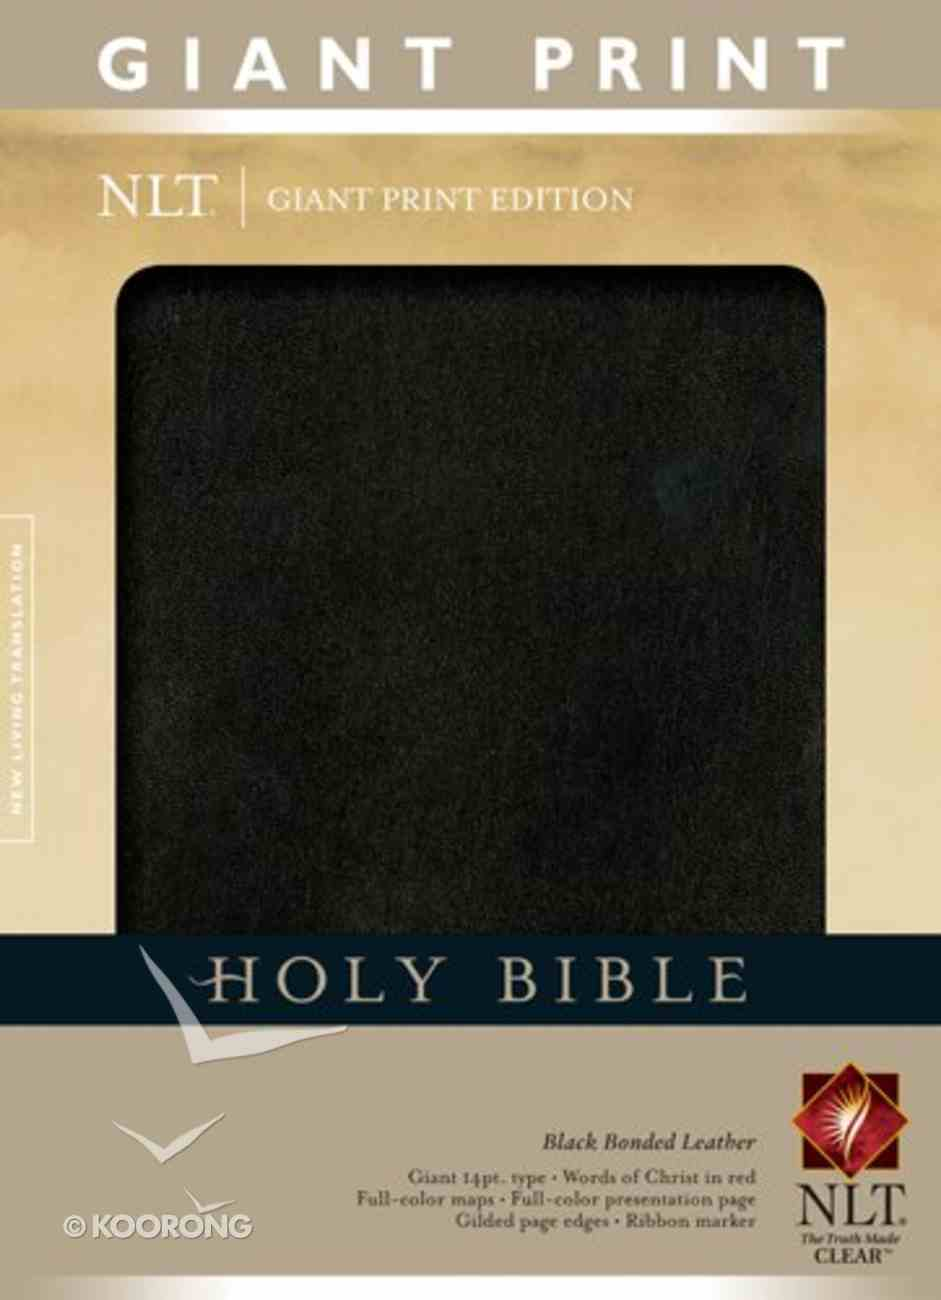 NLT Holy Bible Giant Print Indexed Black (Red Letter Edition) Bonded Leather